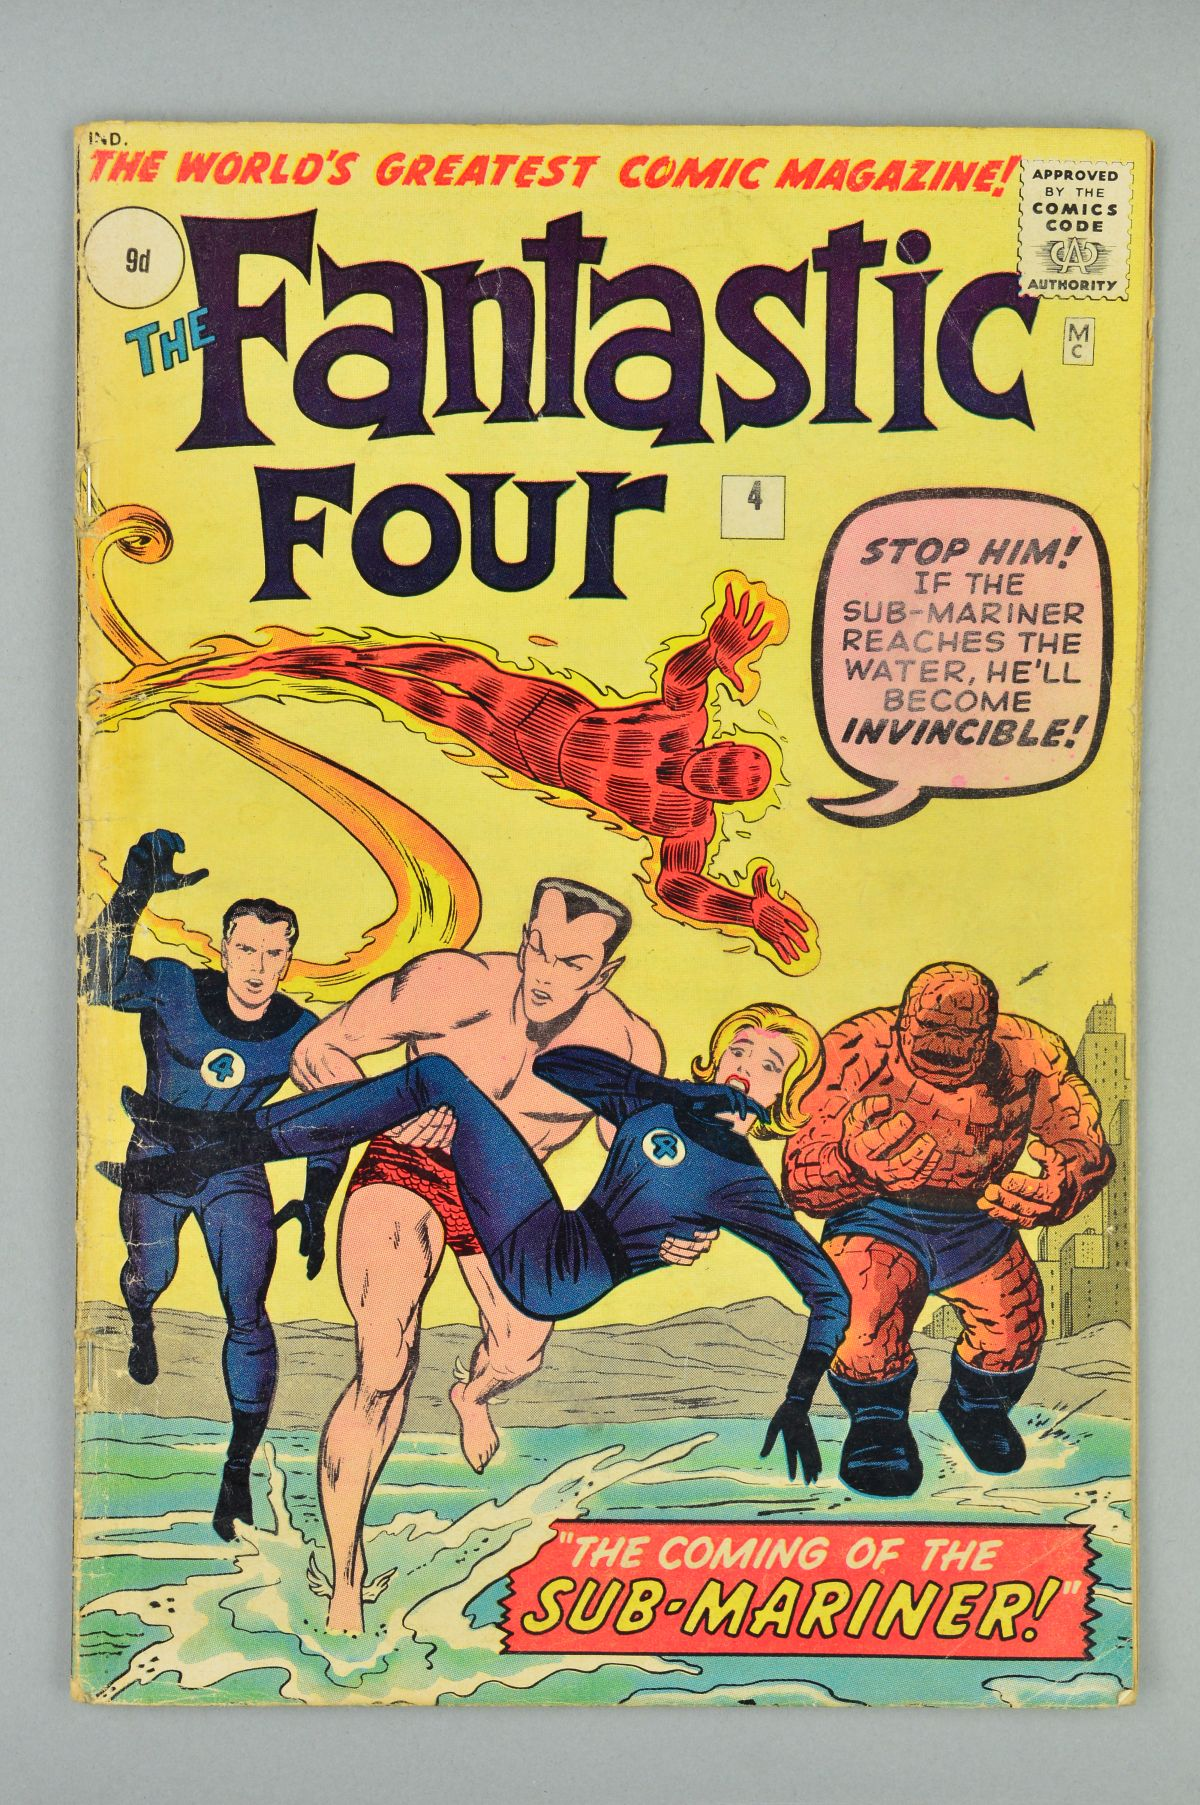 Lot 1804 - Fantastic Four (1961) #4, Published:May 01, 1962, Writer:Stan Lee, The Sub-Mariner has returned!